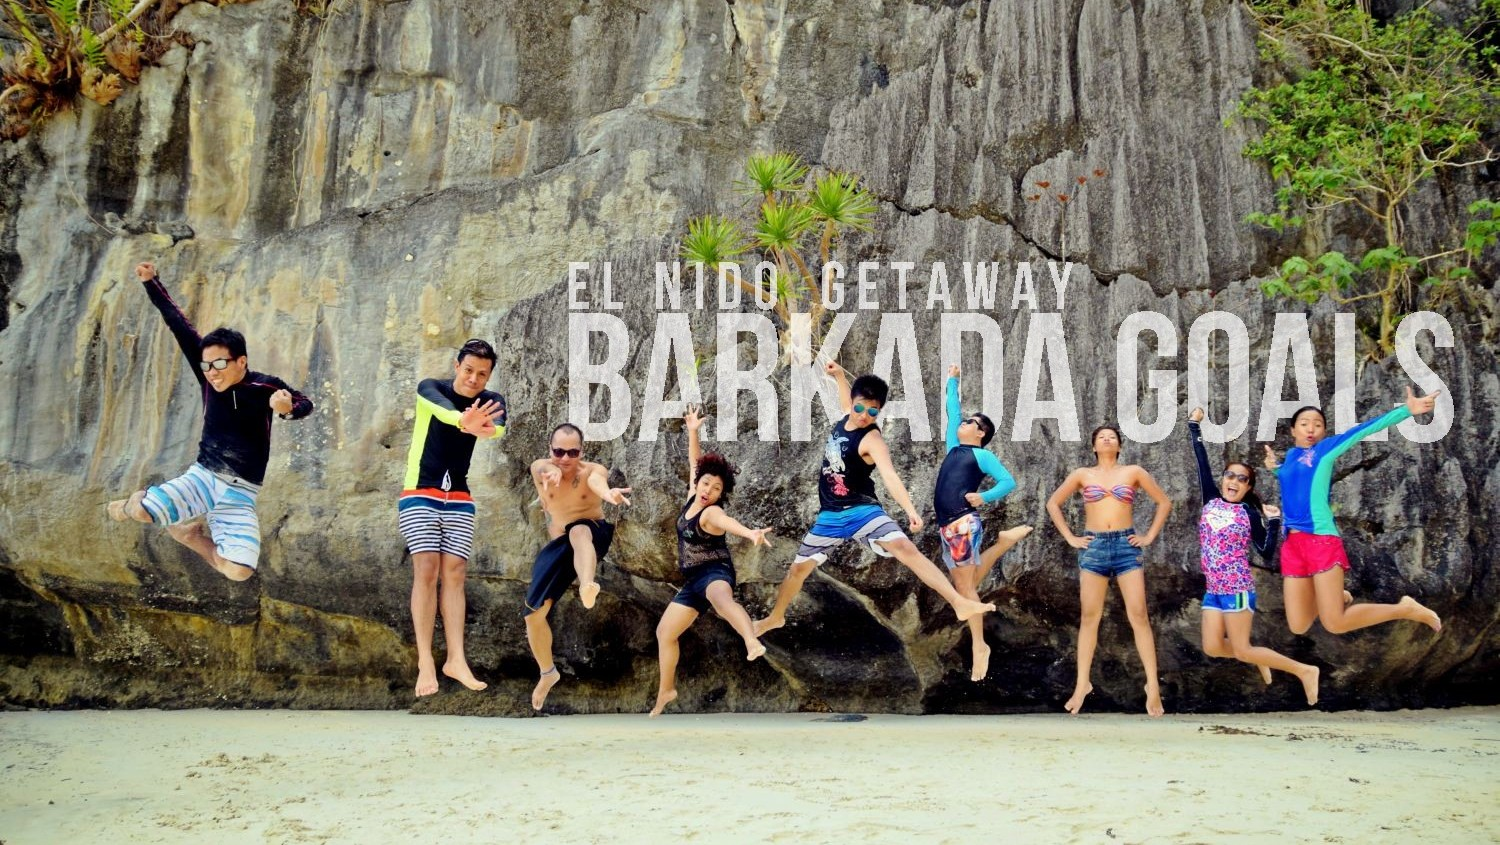 10 Reasons to Visit El Nido with Friends | #SquadGoals